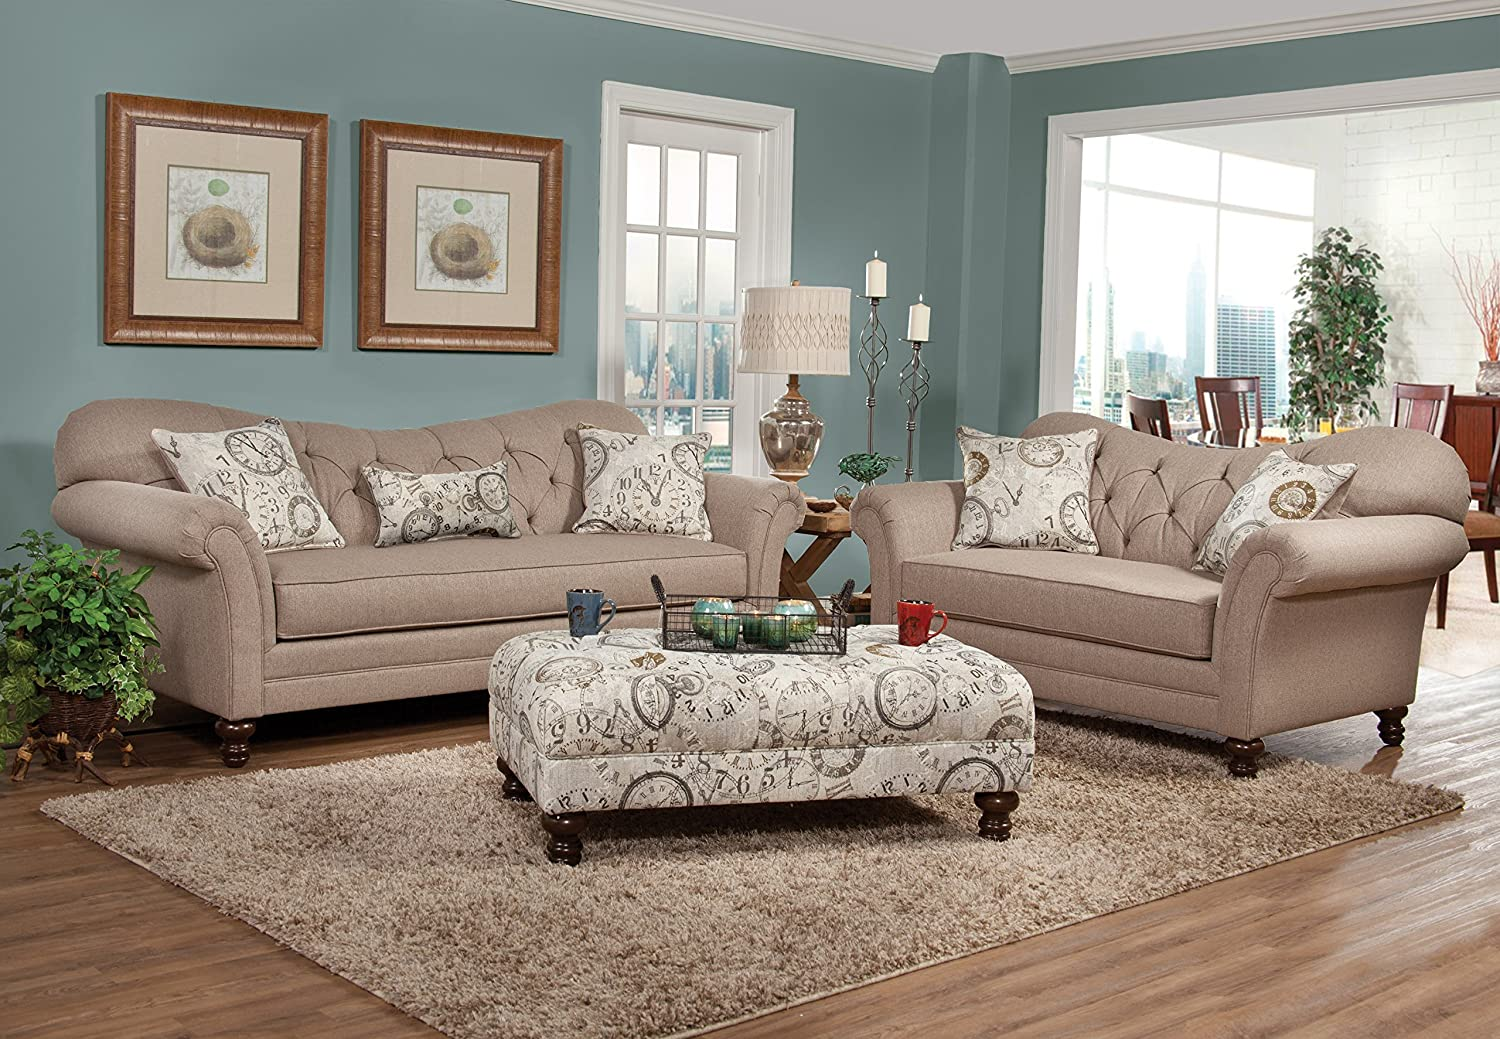 Amazon.com: Roundhill Furniture Metropolitan Taupe Fabric Upholstery Wood  Frame Sofa With Loveseat And Pillows: Kitchen U0026 Dining